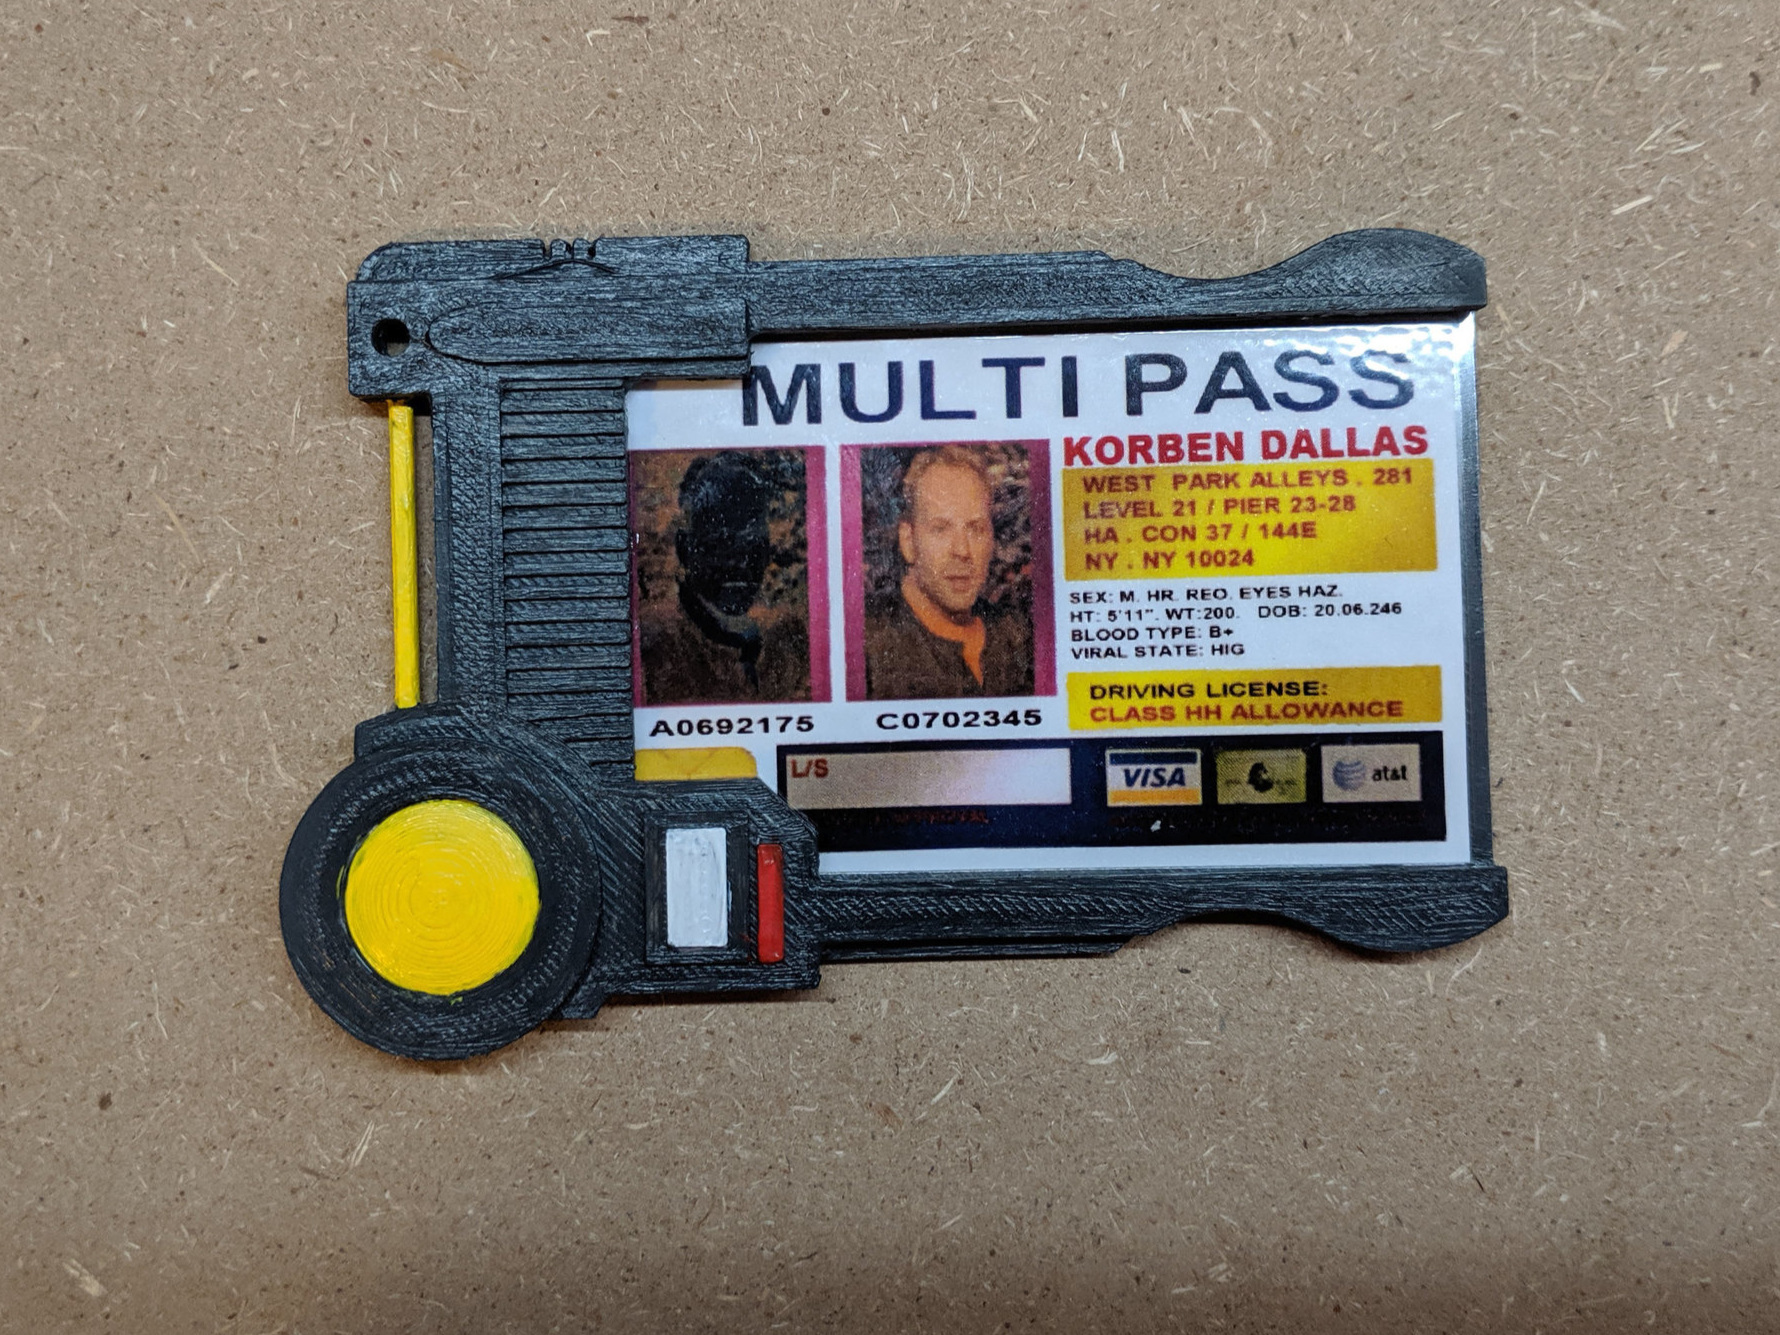 Multipass file https://www.thingiverse.com/thing:2317320